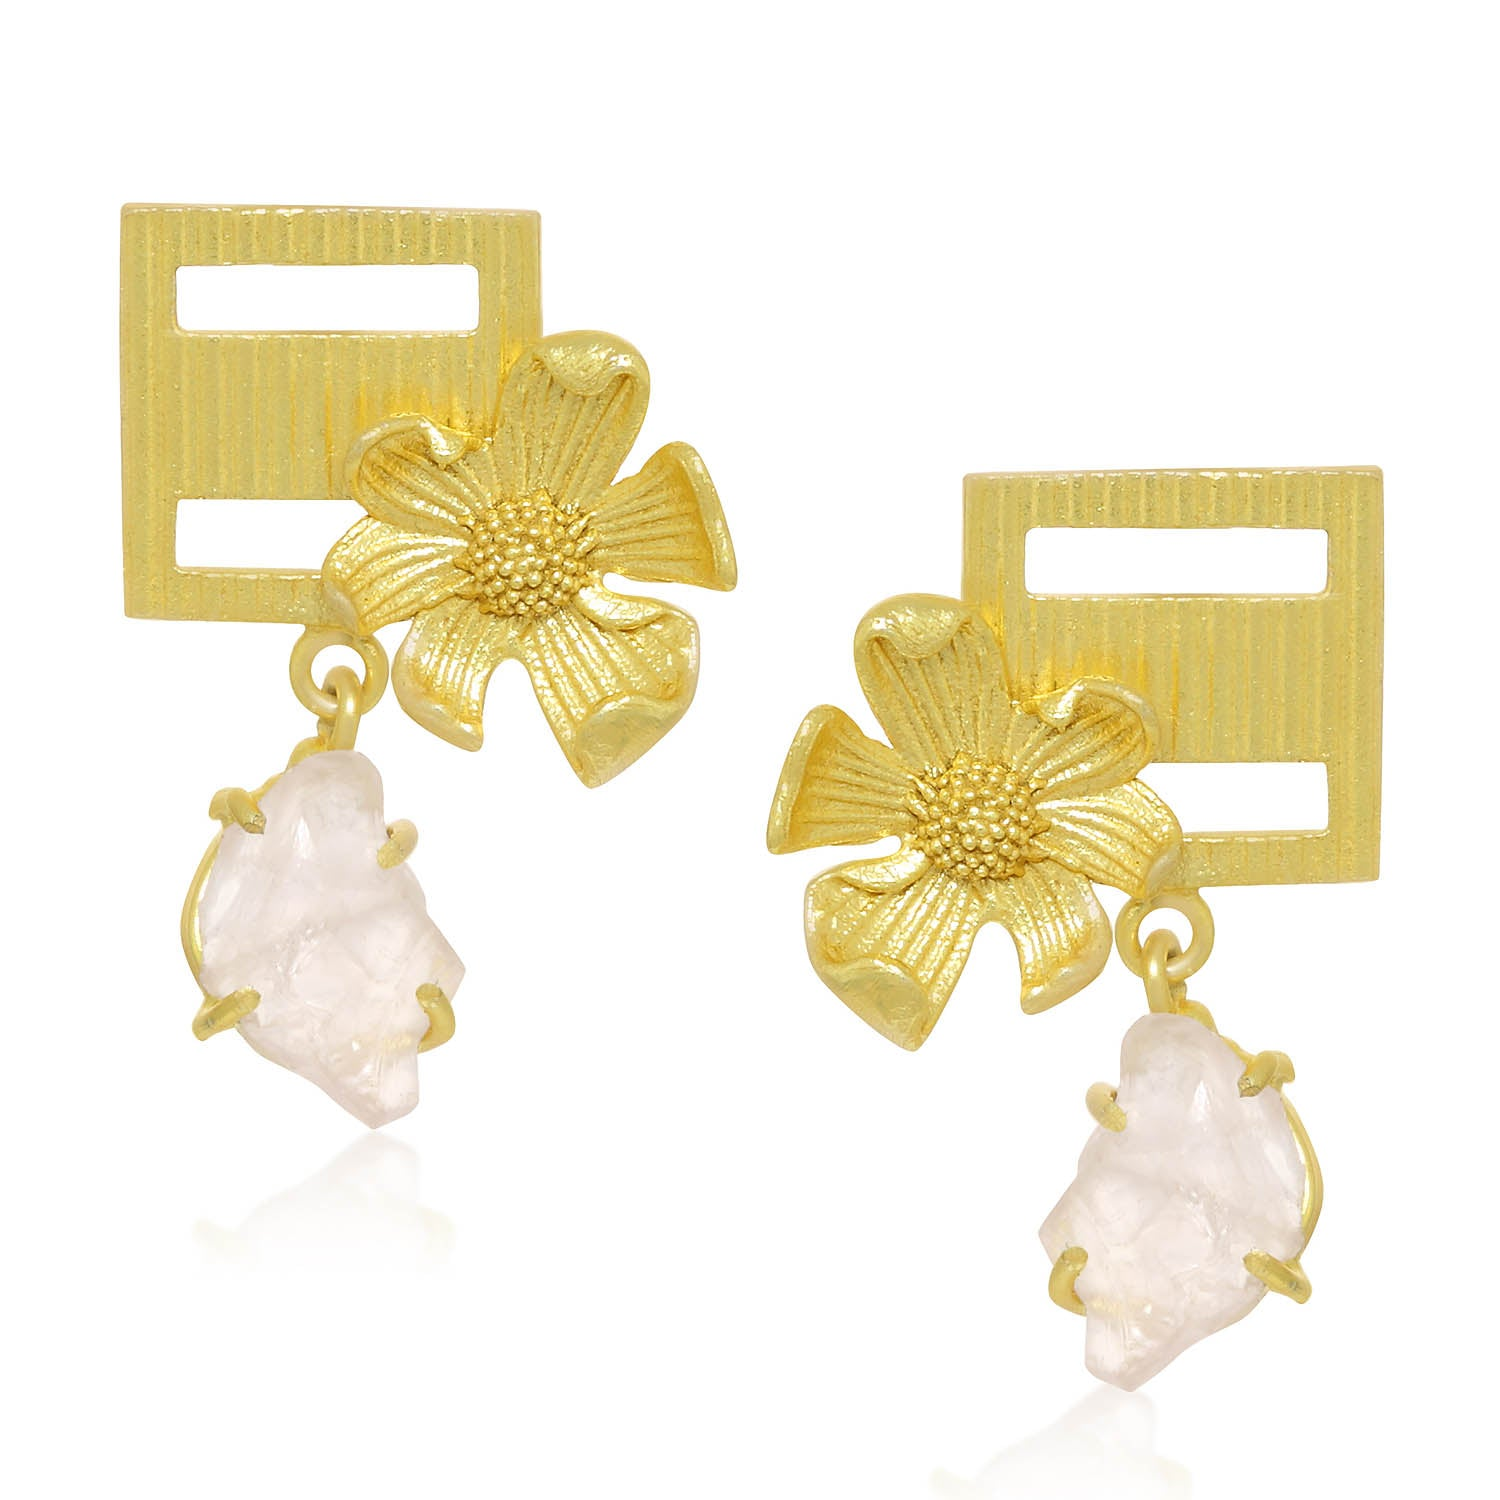 Sukkhi Classic Gold Plated Floral Dangle Earring For Women-SUKKHI1-Earring